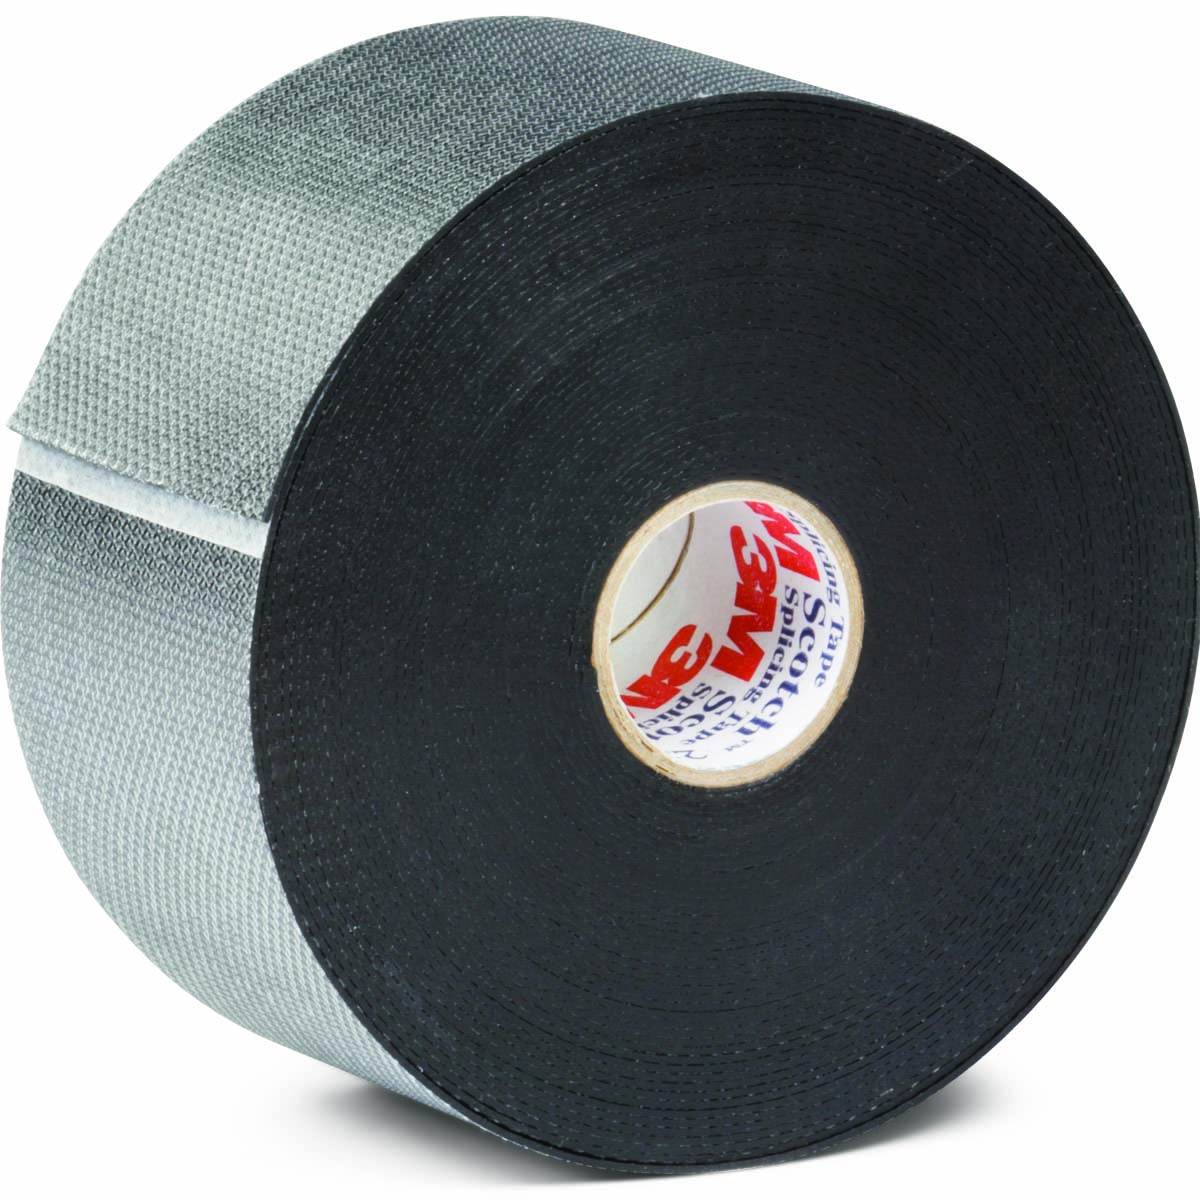 3m Scotch 174 23 Rubber Splicing Tape Kimball Midwest